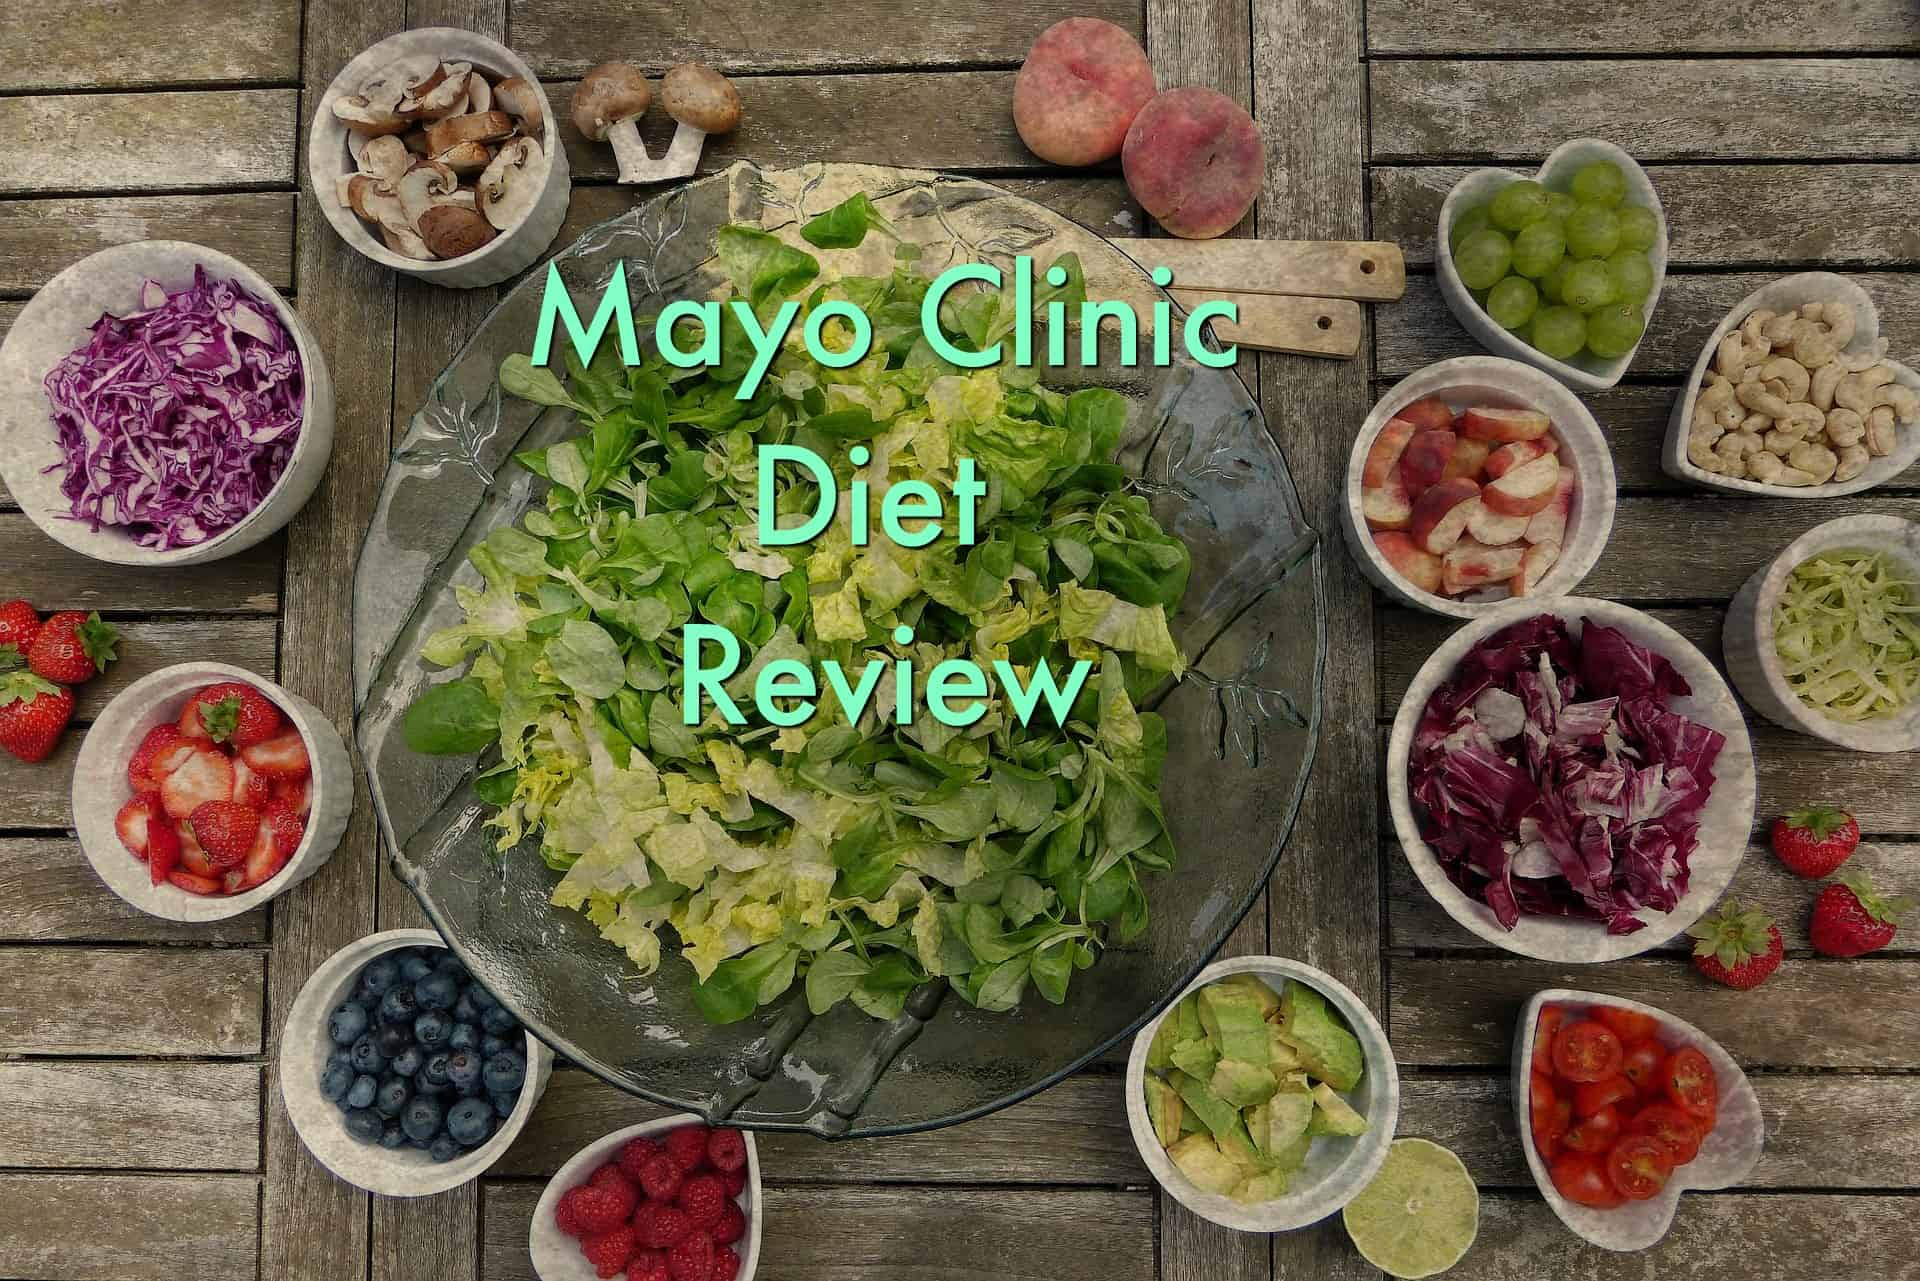 Mayo Clinic Diet Review – Everything You Need to Know About This Weight-Loss Program